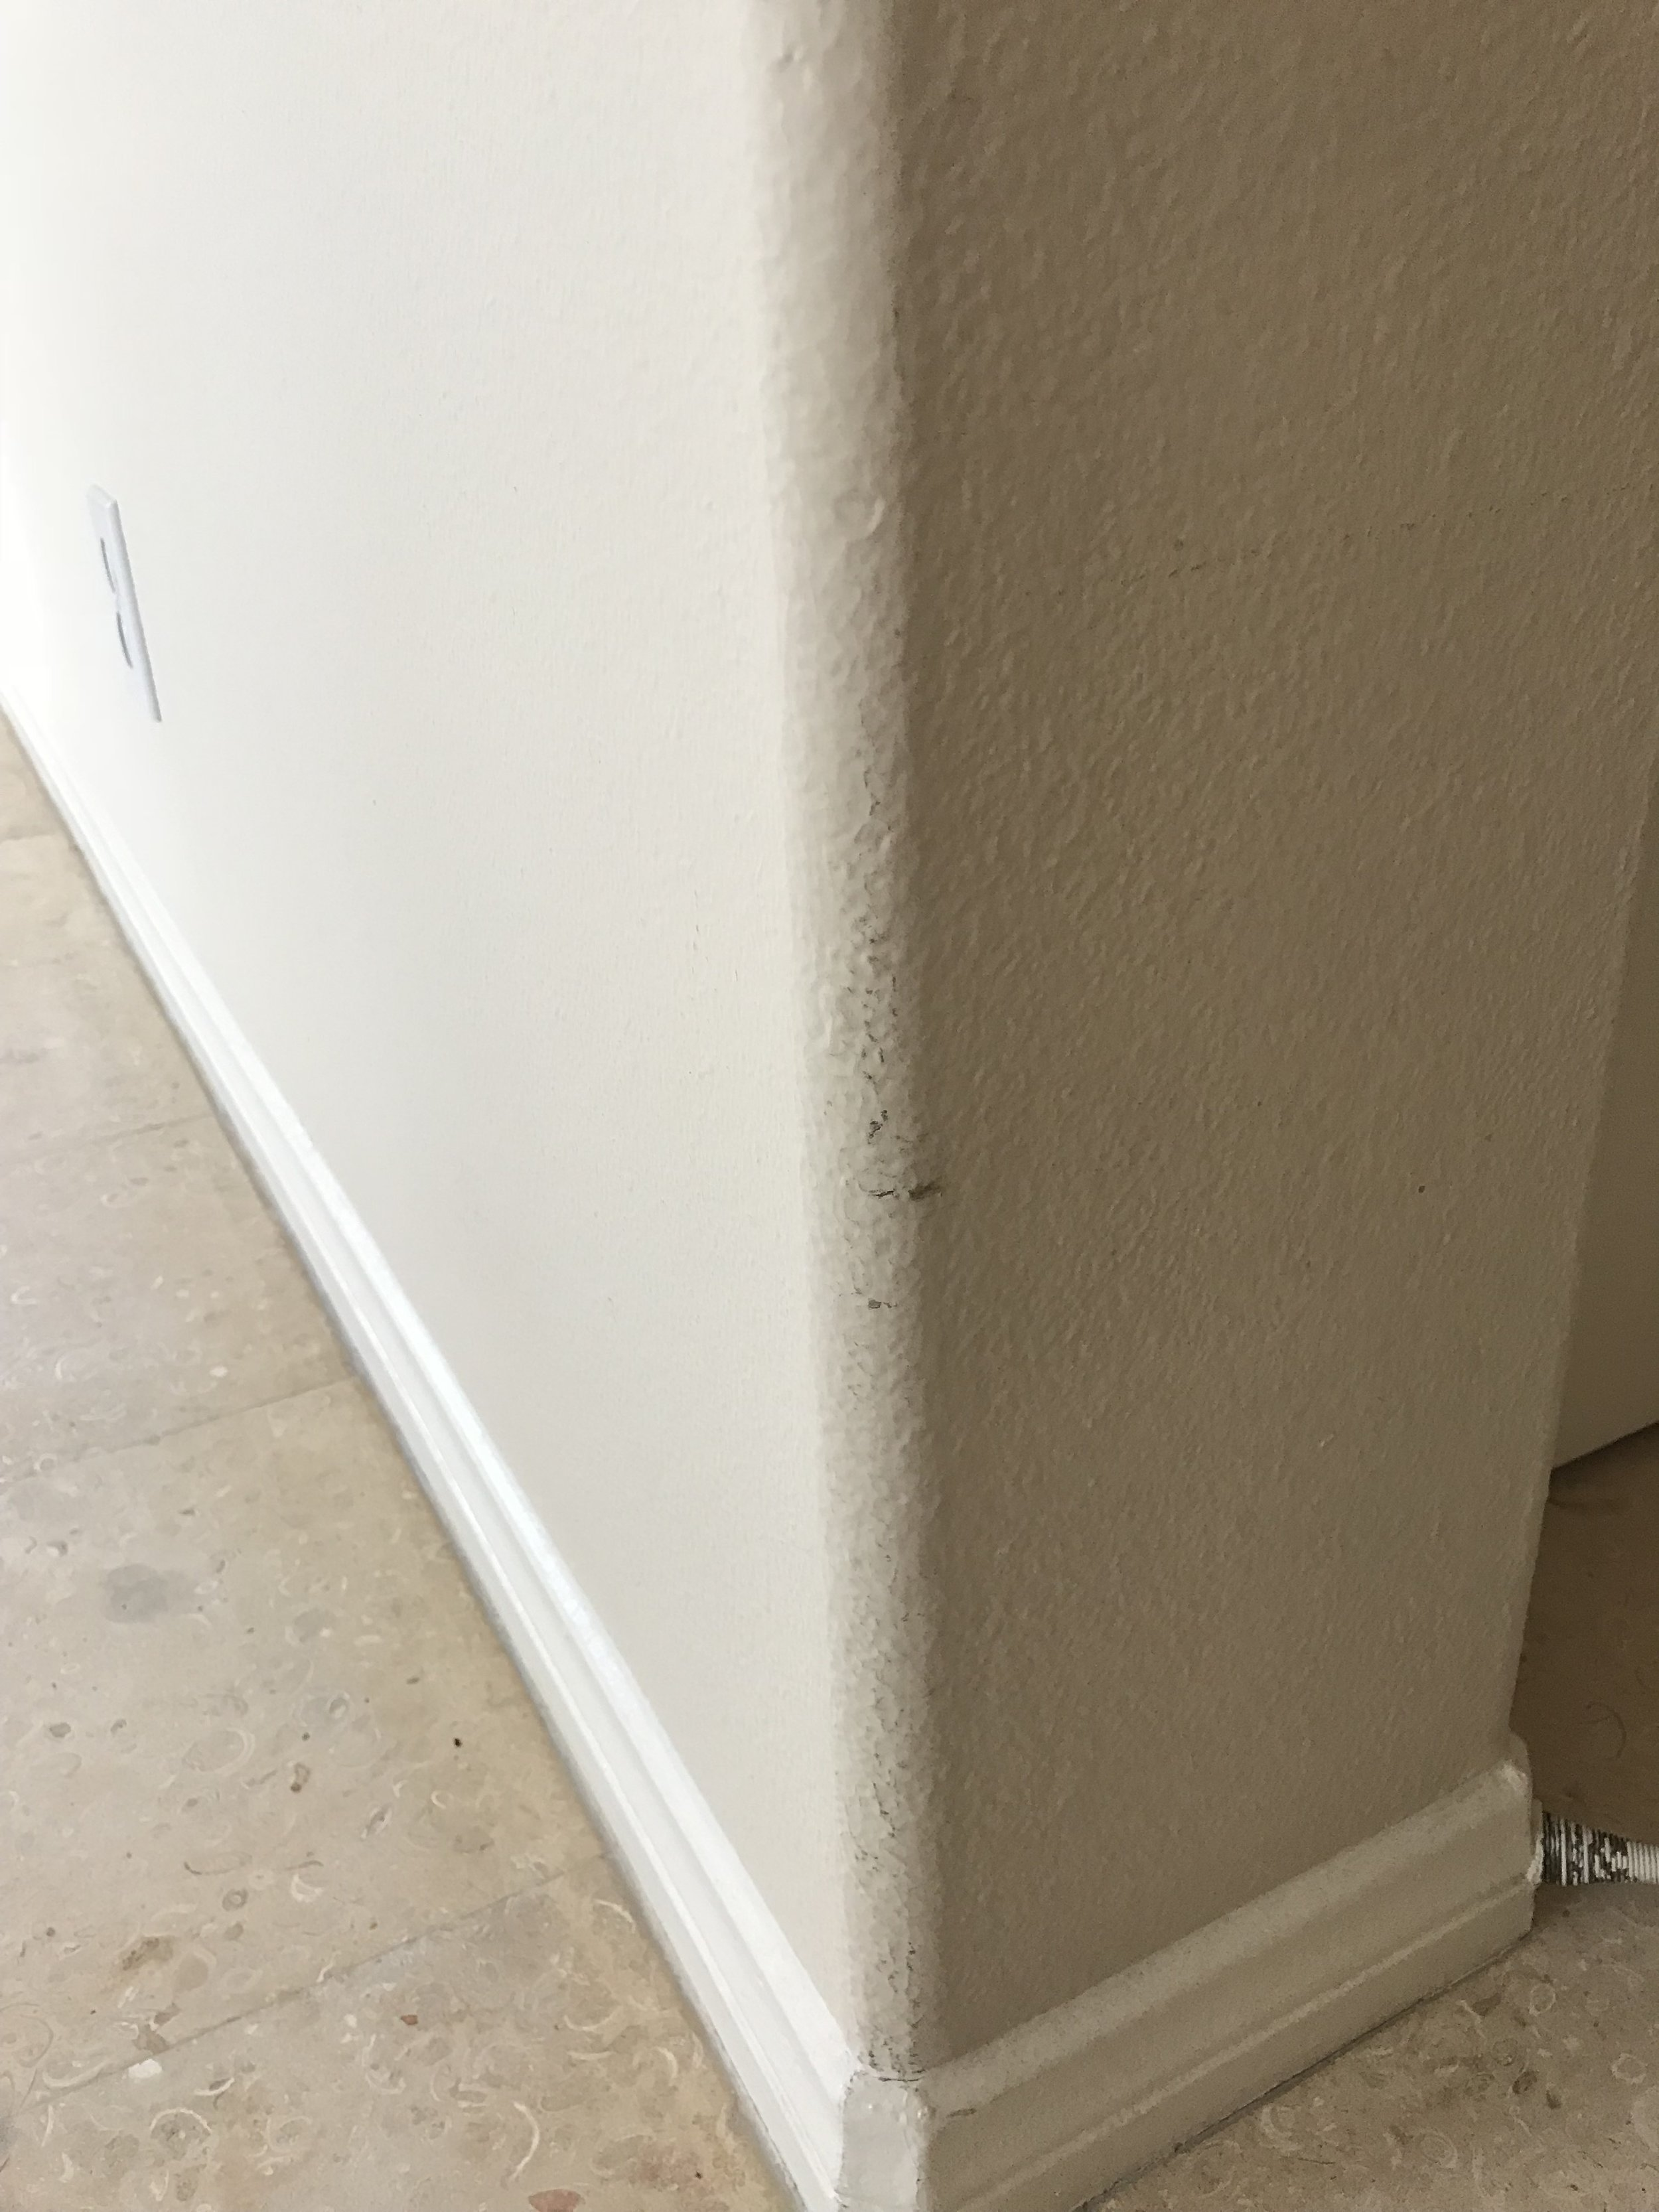 Wall before - Scuffs and stains